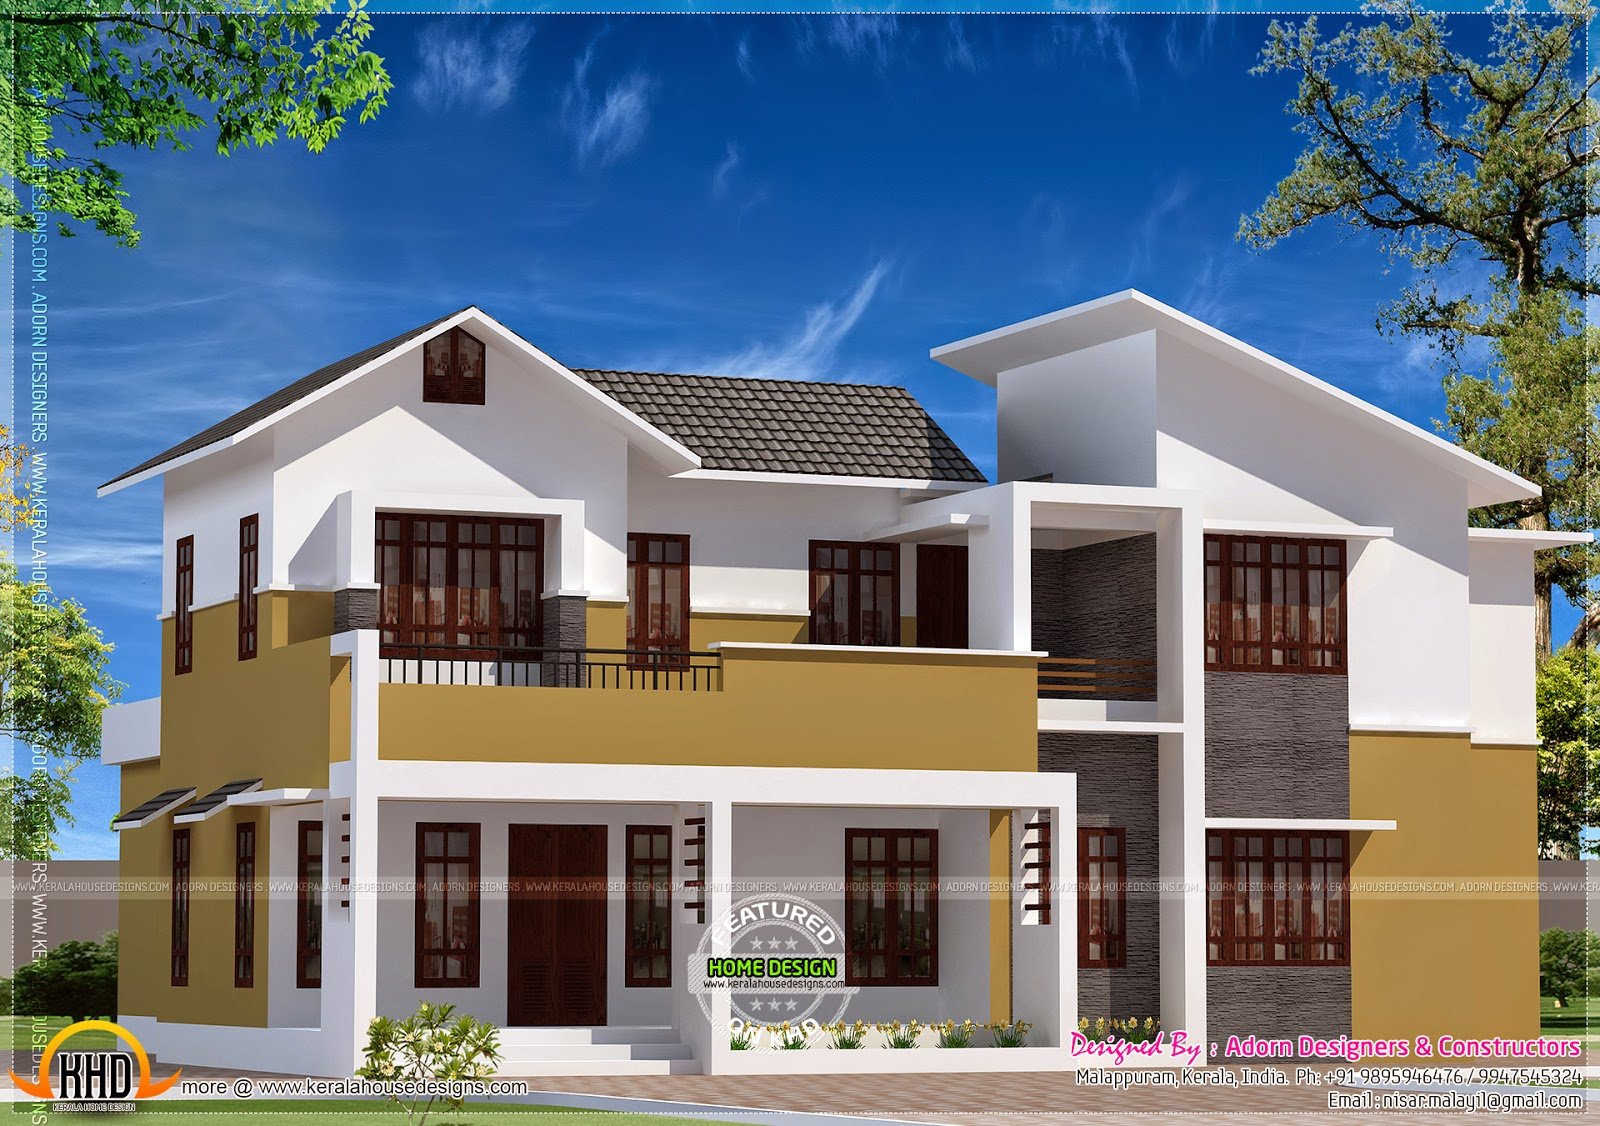 home design interior singapore: Modern mix house at Malappuram, Kerala